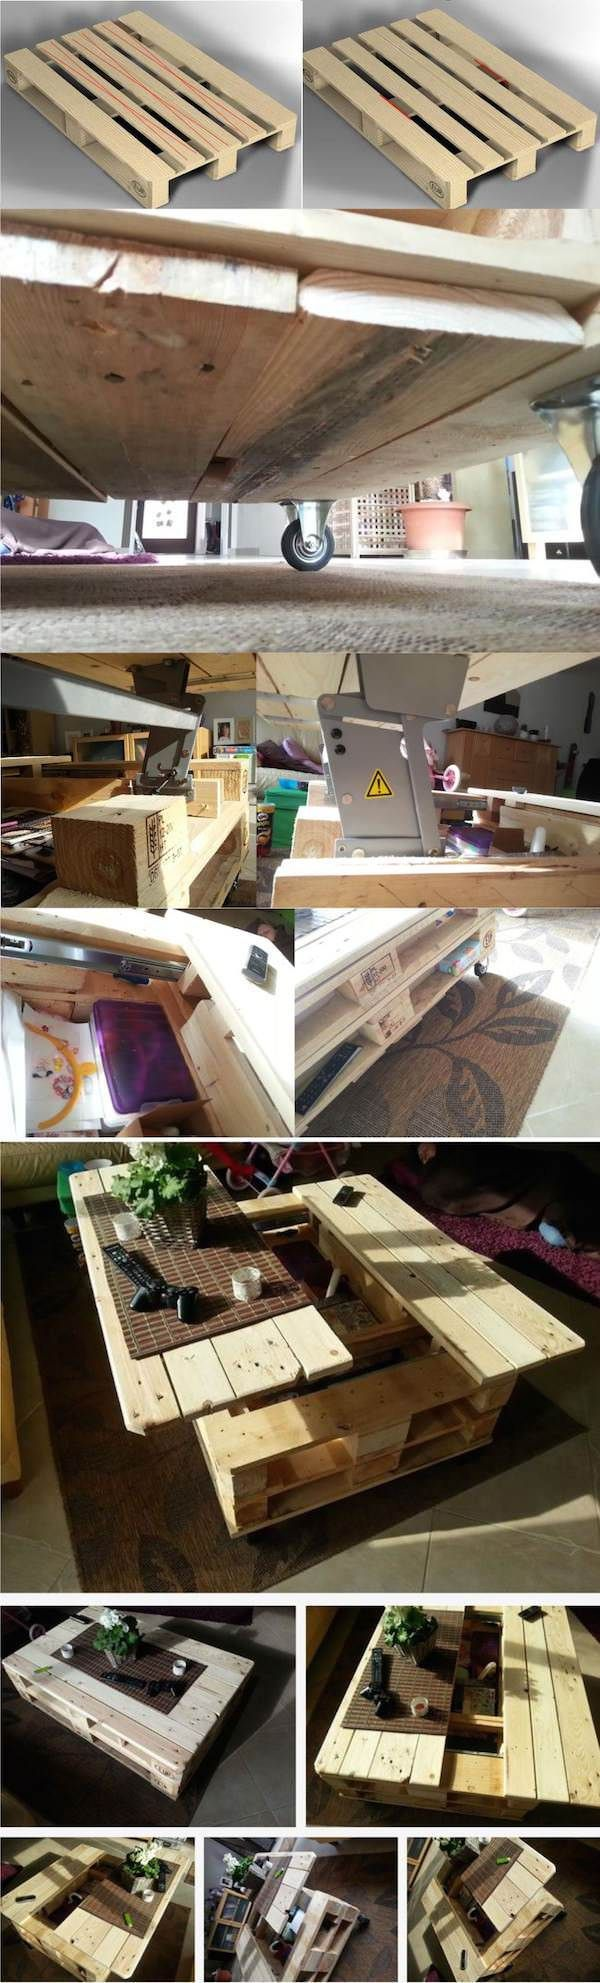 Wood pallet coffee table do you assume wood pallet coffee table - Modular Pallet Coffee Table With Storage Pallet Ideas 1001 Palletswooden